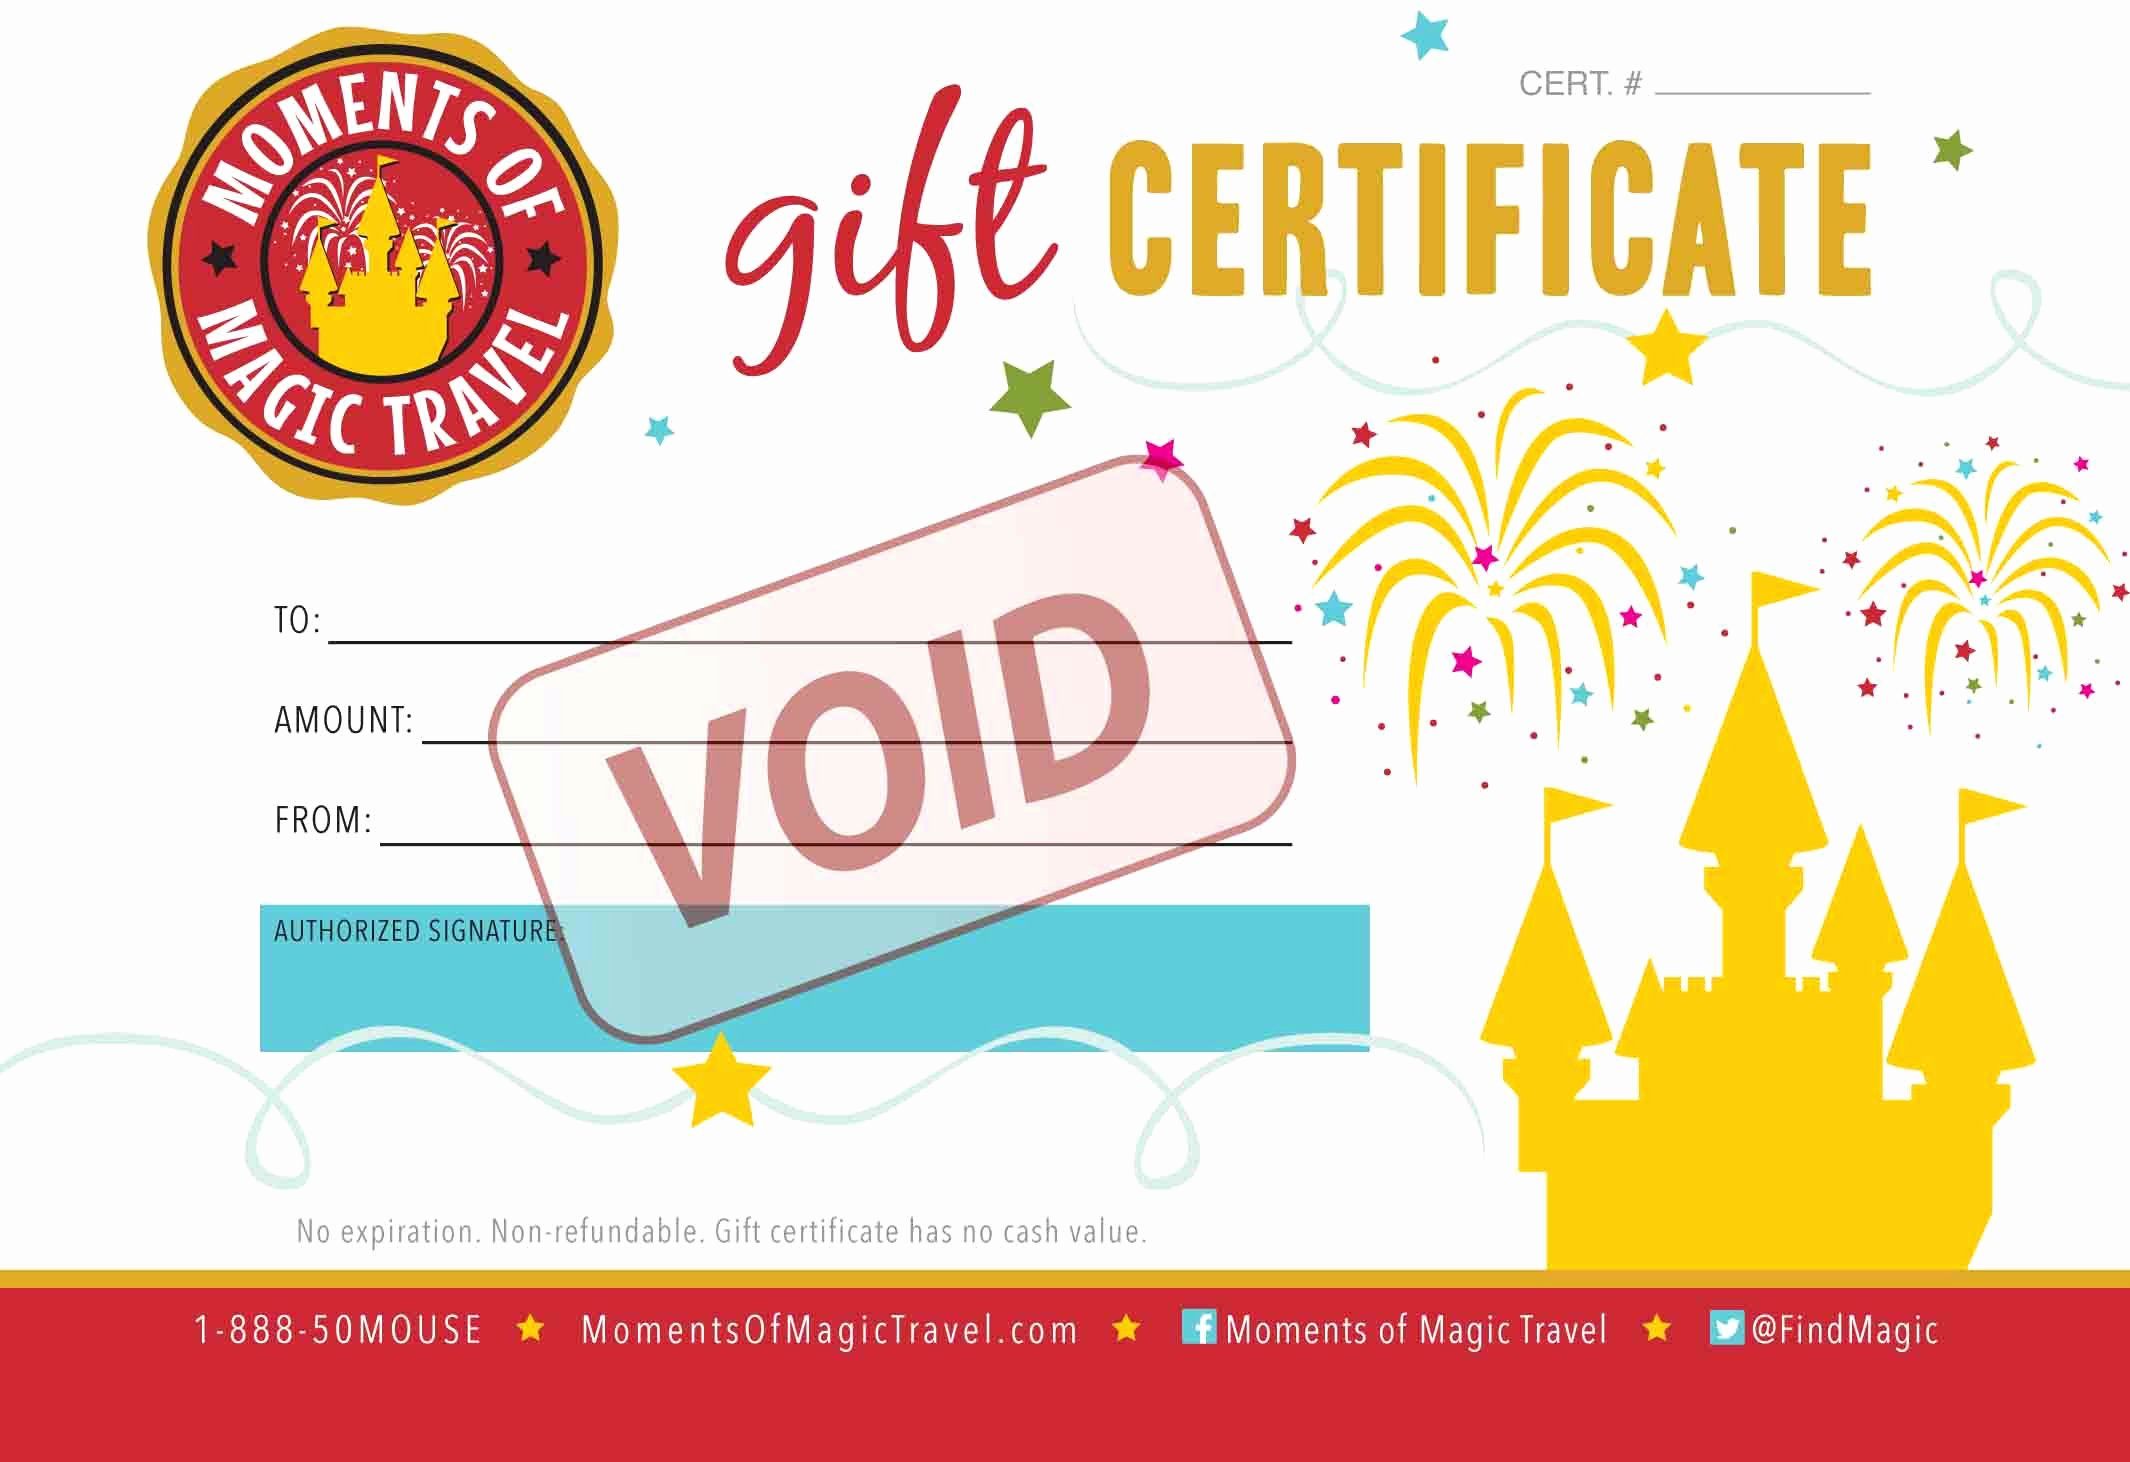 Vacation Gift Certificate Template Luxury Adventures by Disney Archives